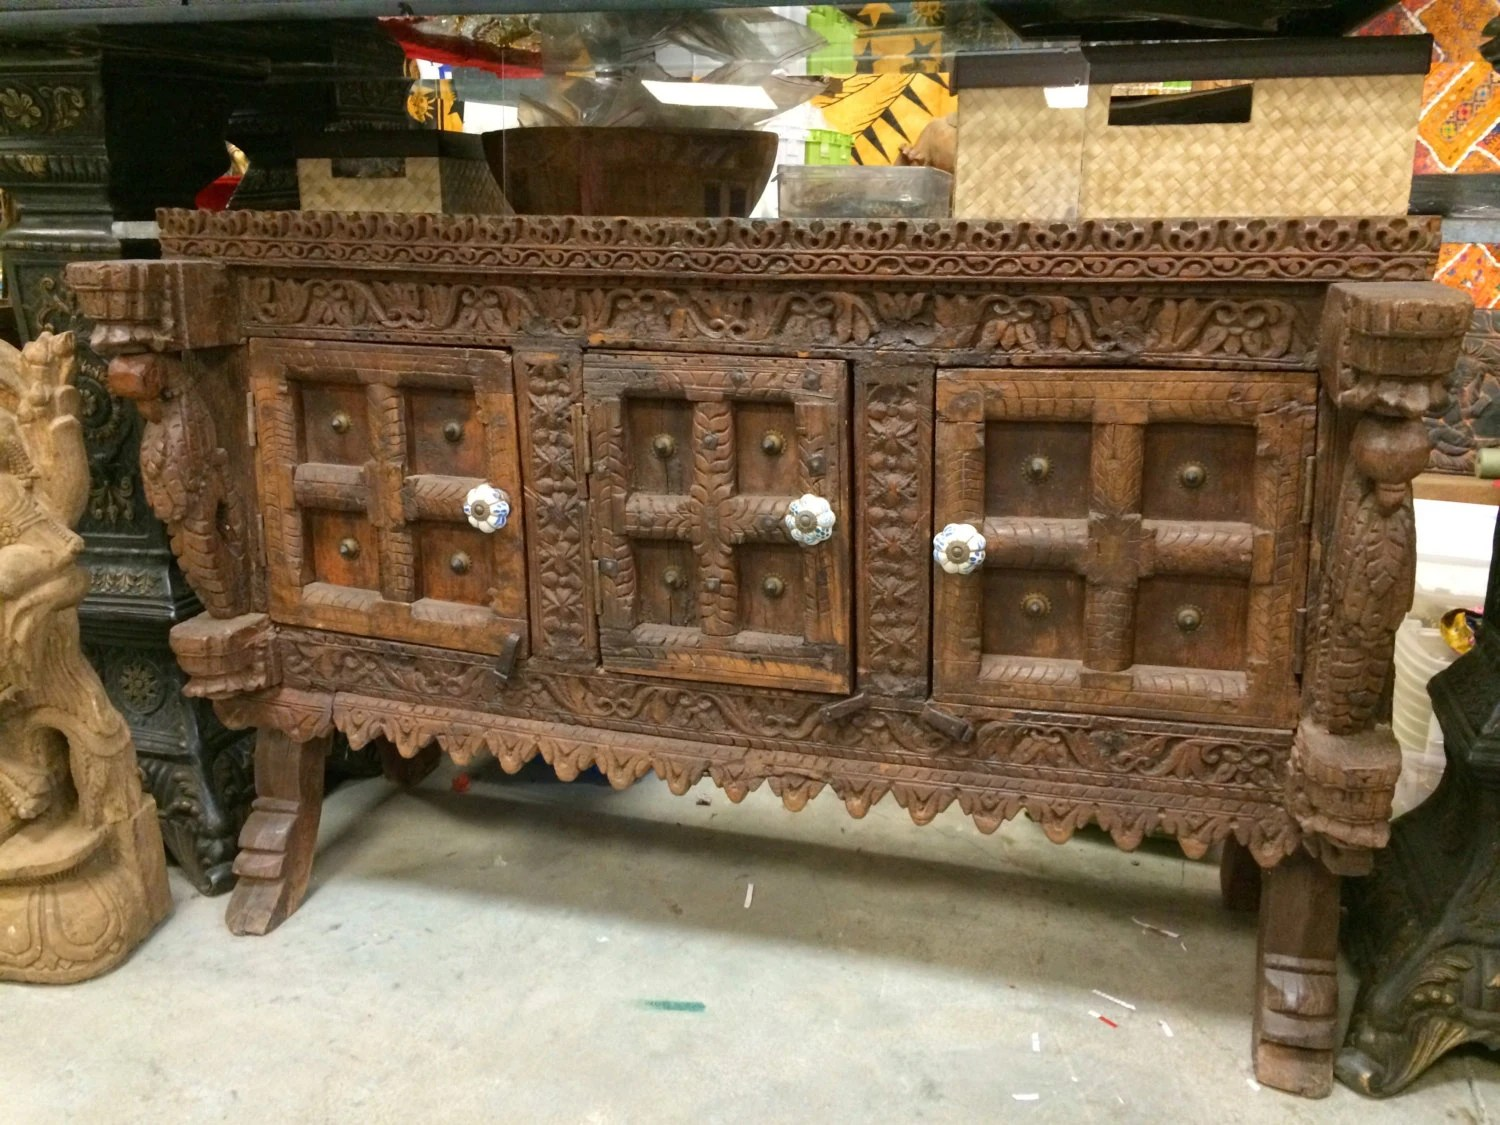 Antique Indian Sideboard Chest Dresser Vintage Teak Wood Rustic Buffets Manjoosh India Furniture